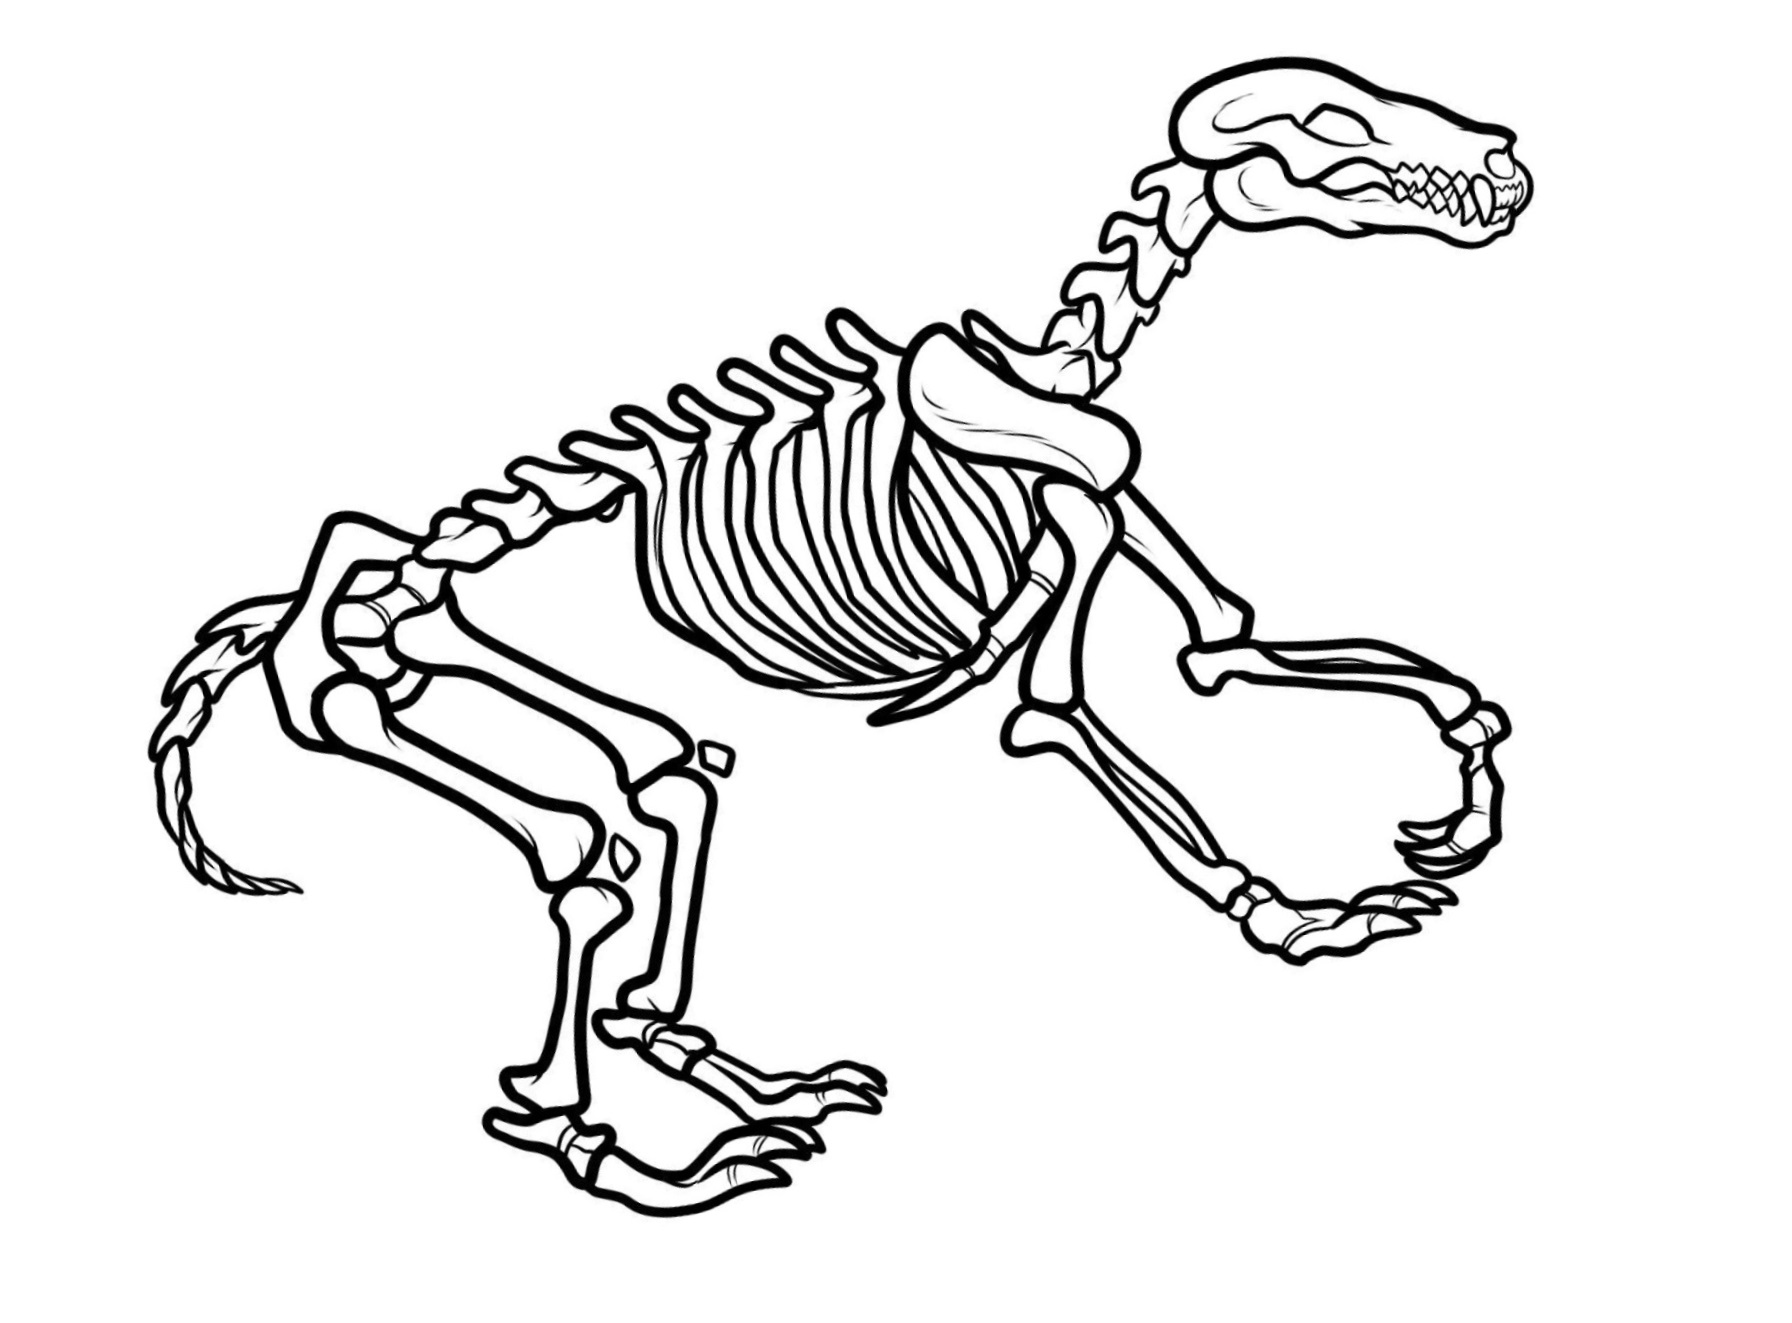 Picture Of A Skeleton For Kids Free Download Best Picture Of A Skeleton For Kids On Clipartmag Com